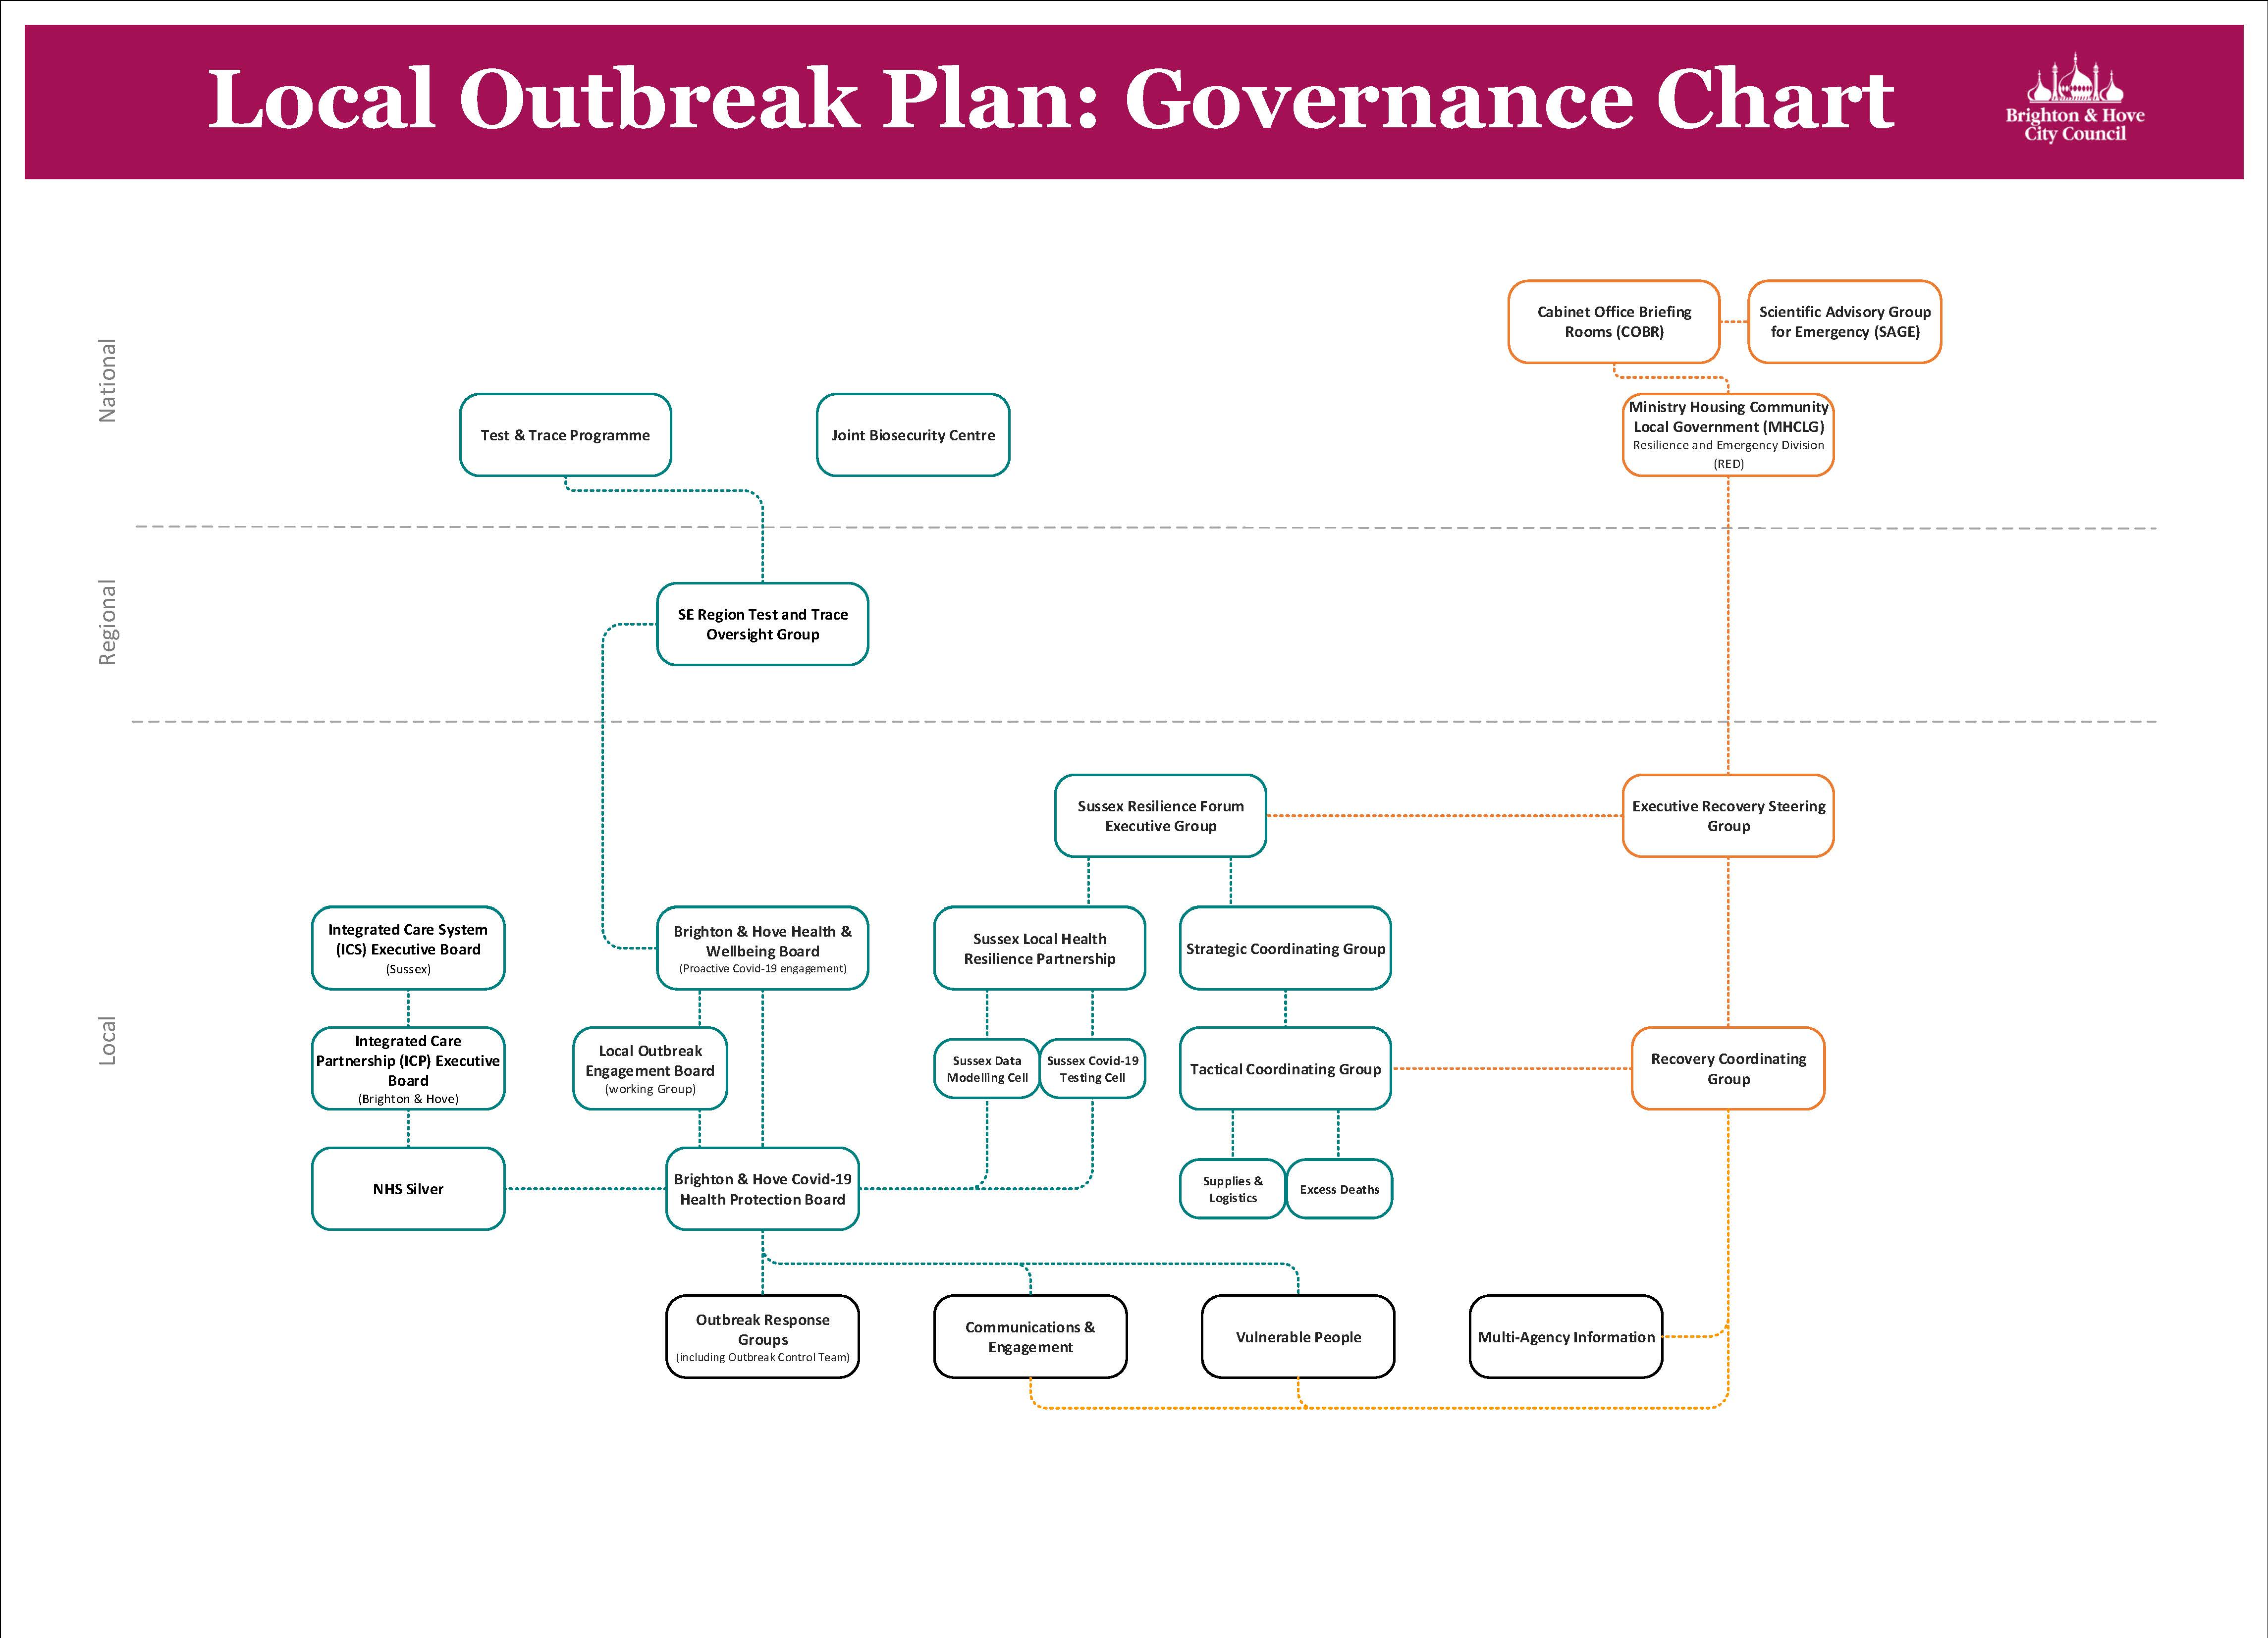 Figure 3: Governance structure for the Local Outbreak Plan